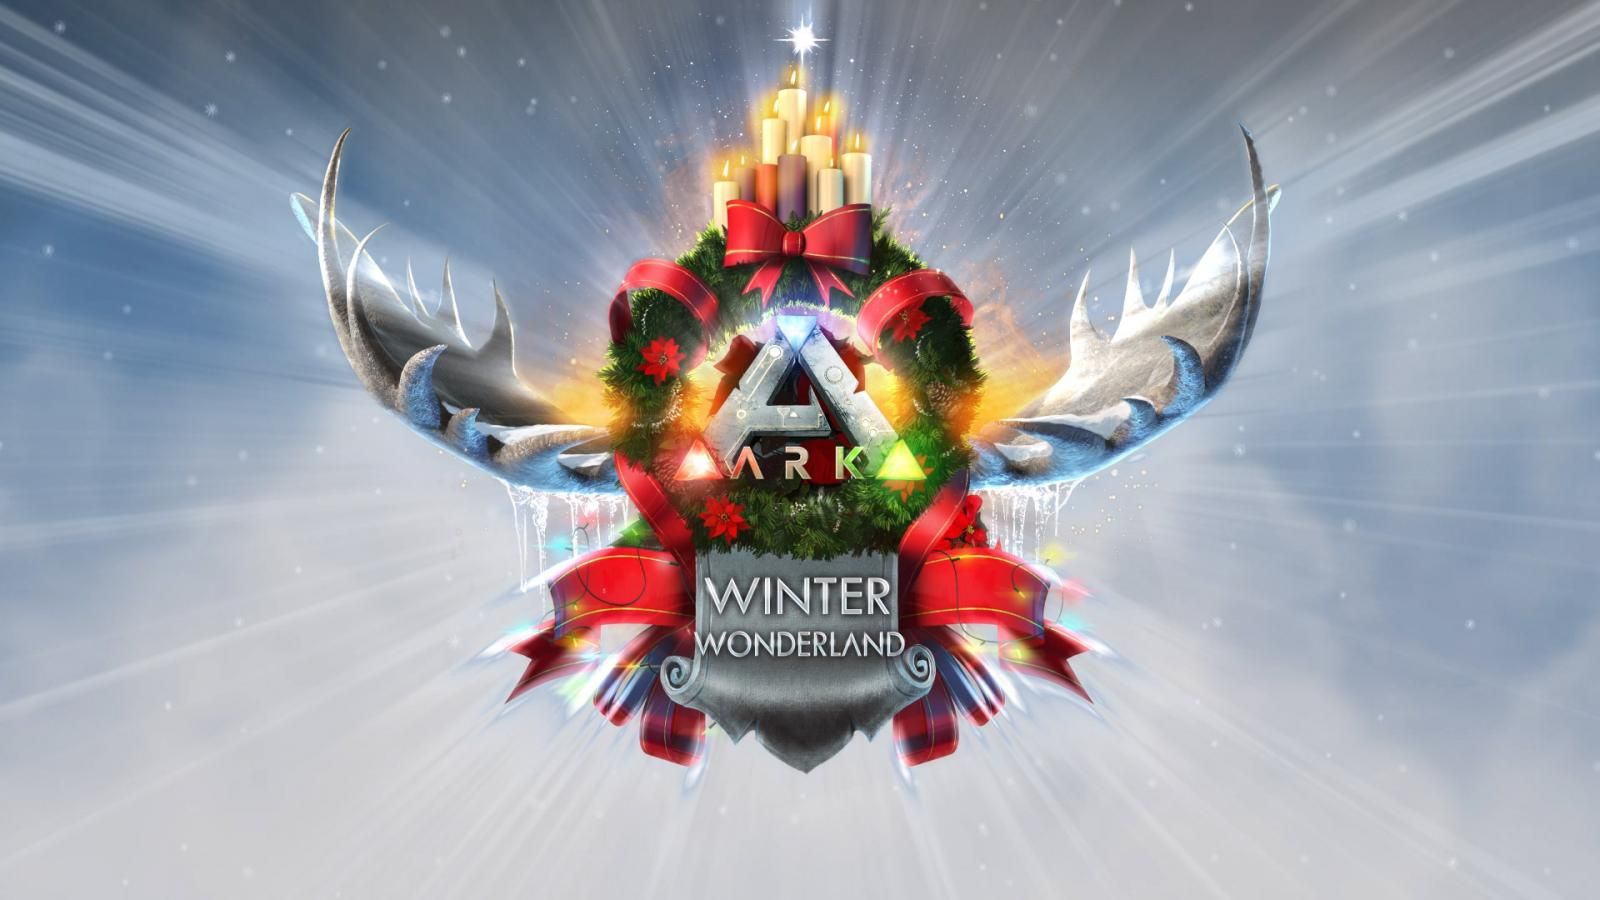 ARK winter wonderland 184